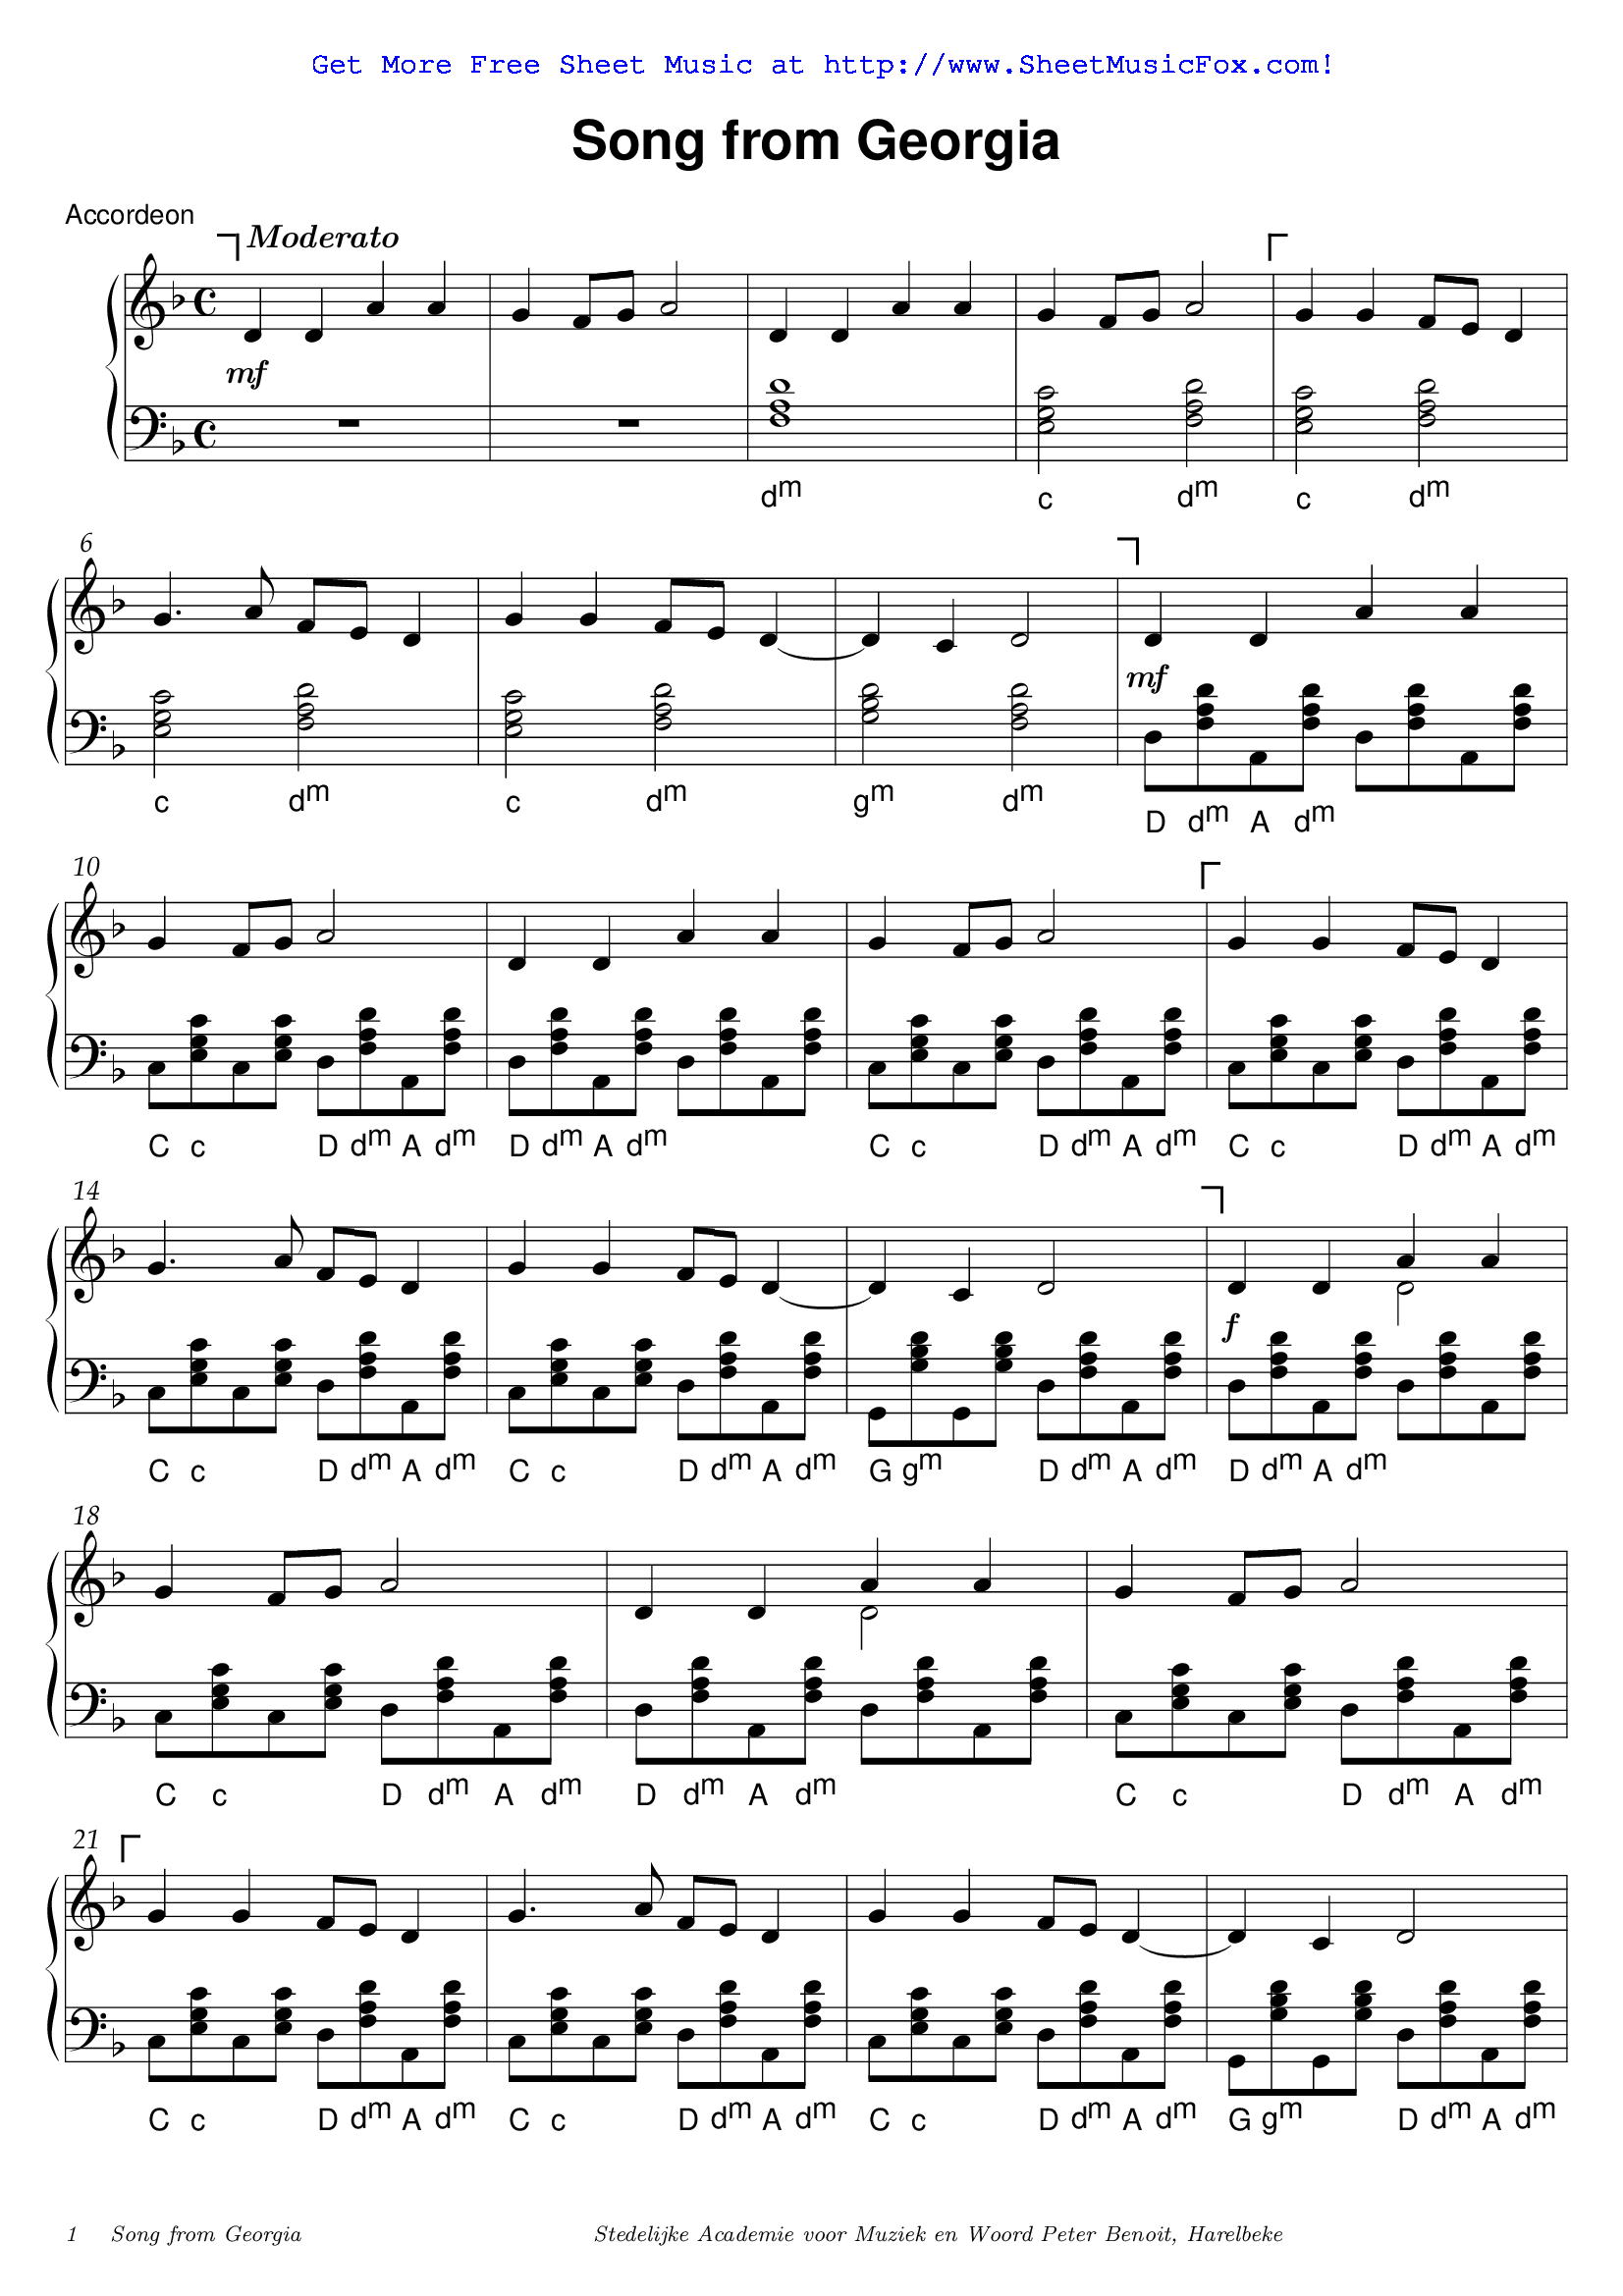 Free Fiddle Sheet Music For Devil Went Down To Georgia